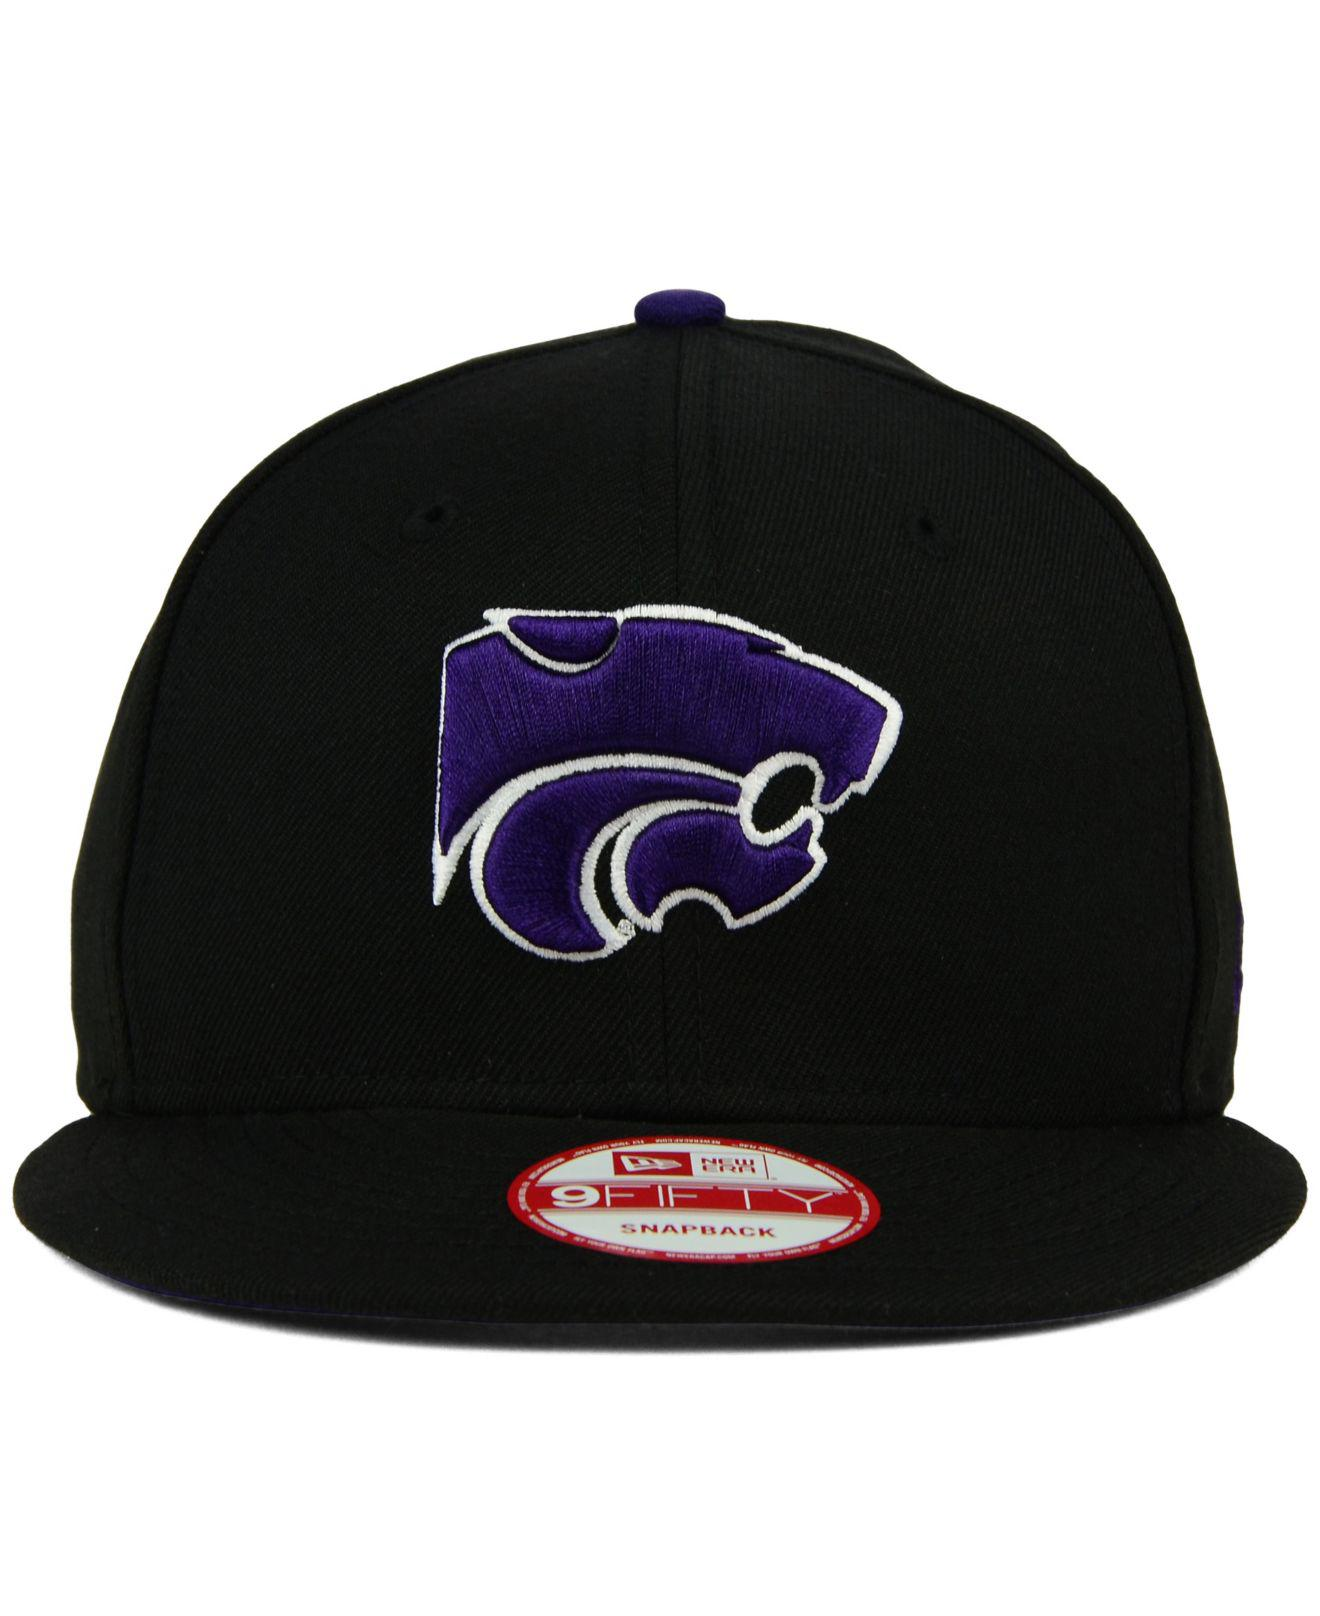 online store 2e8ac 9ef9f KTZ - Black Kansas State Wildcats Core 9fifty Snapback Cap for Men - Lyst.  View fullscreen